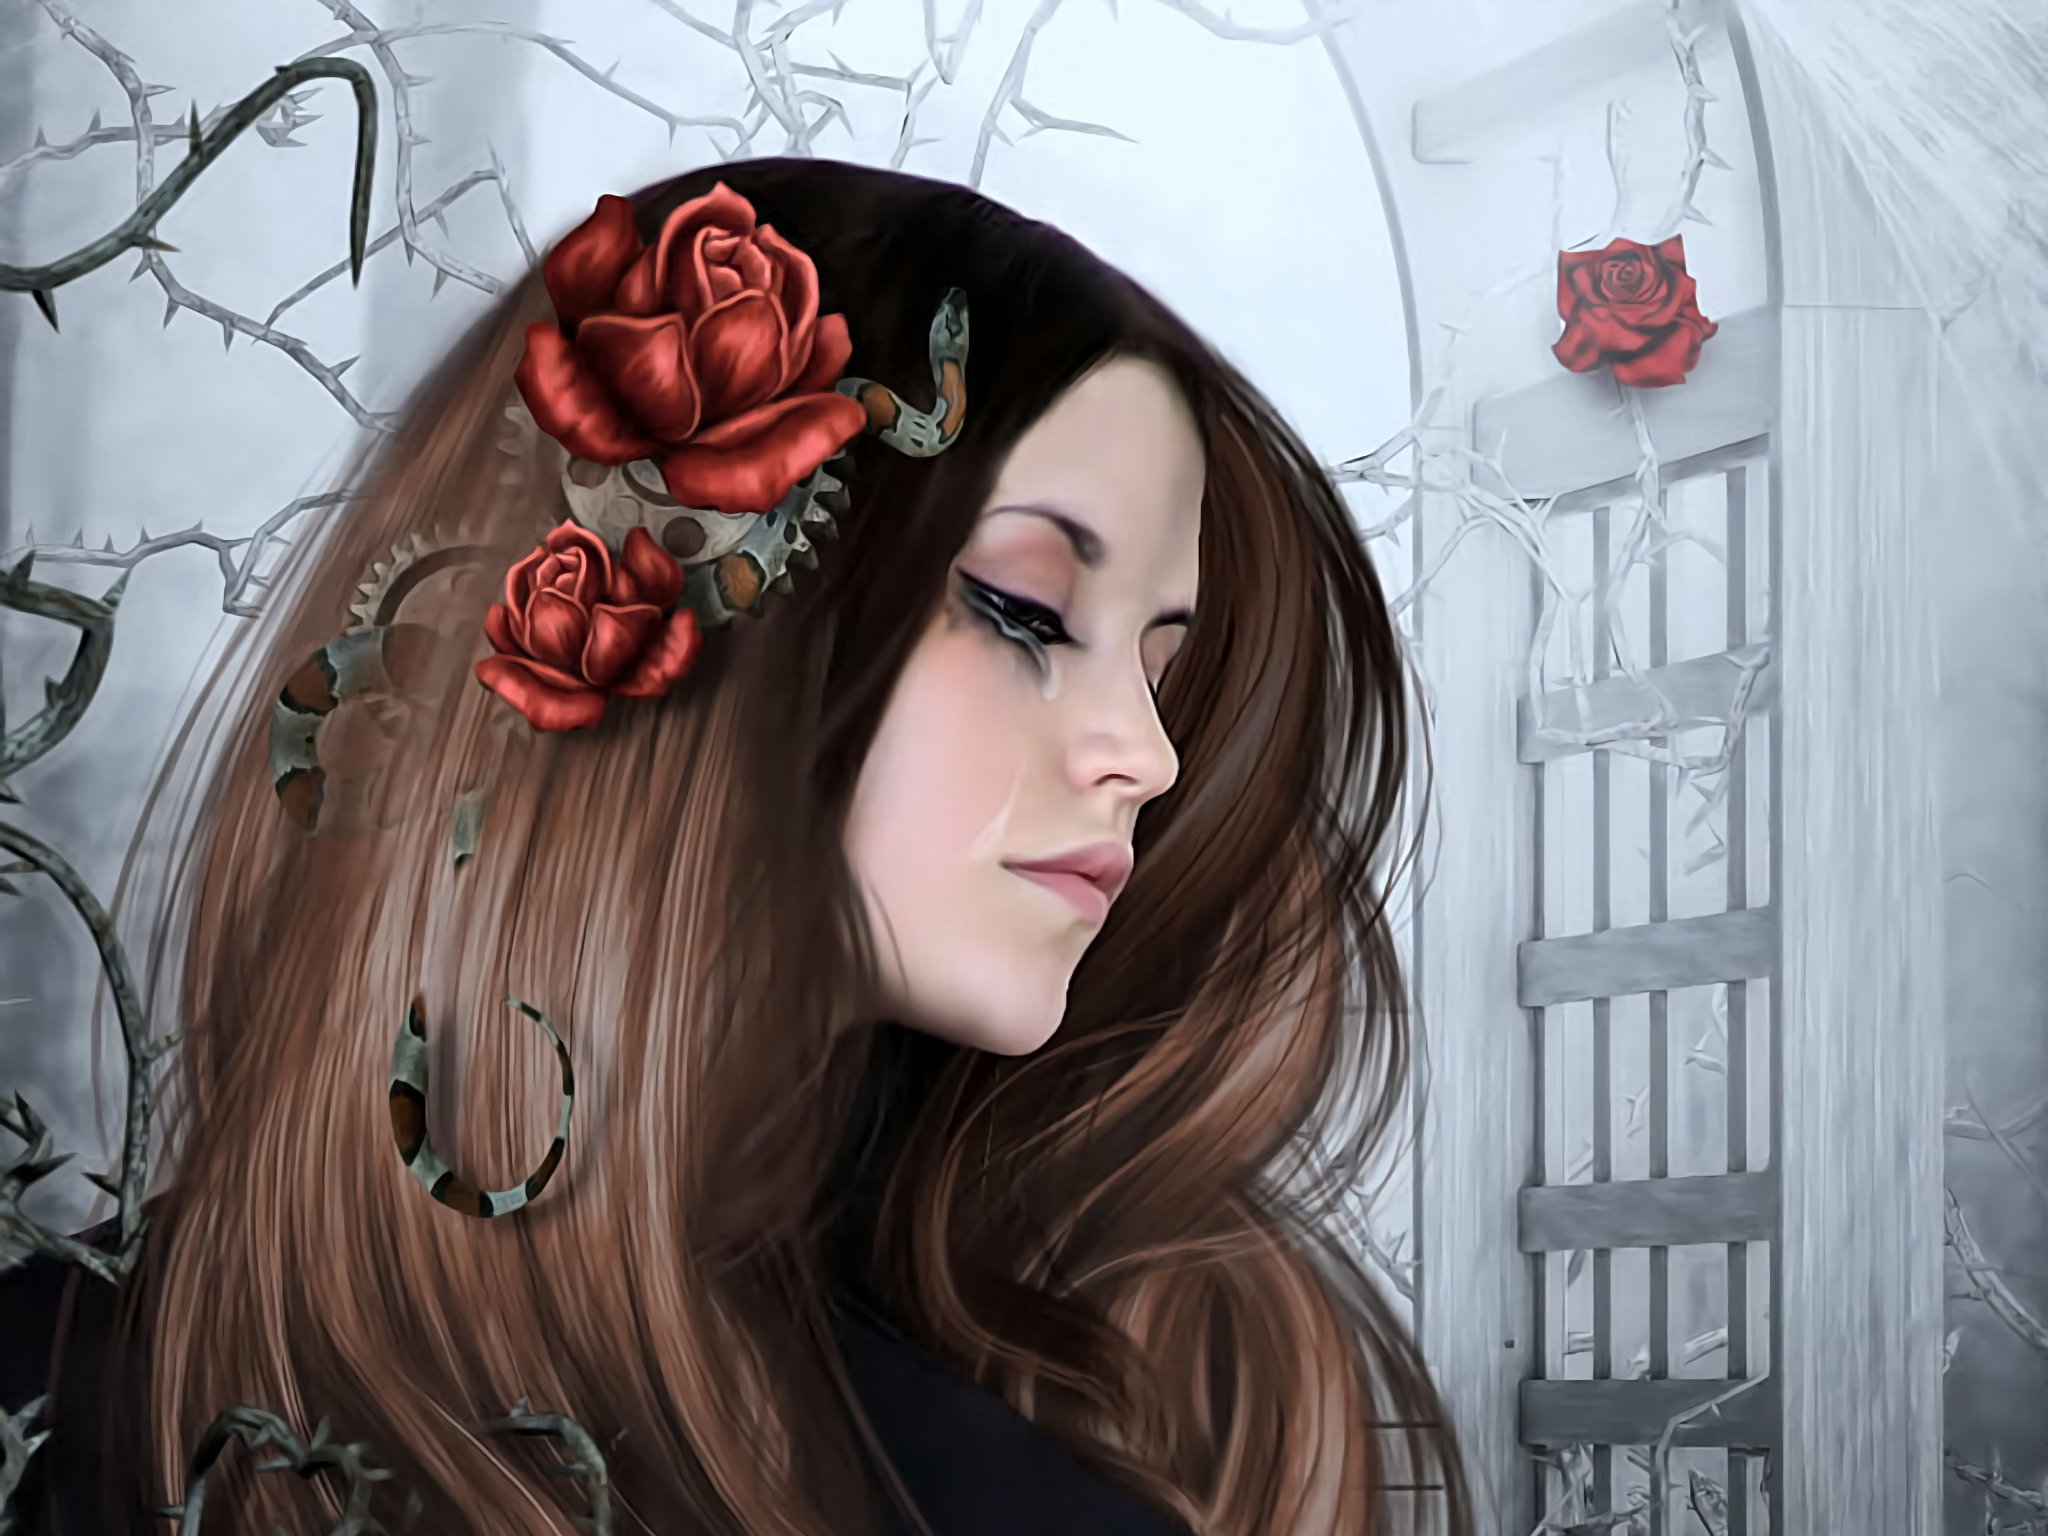 Snakes and roses full hd wallpaper and background image fantasy women tears fantasy woman hair snake rose wallpaper voltagebd